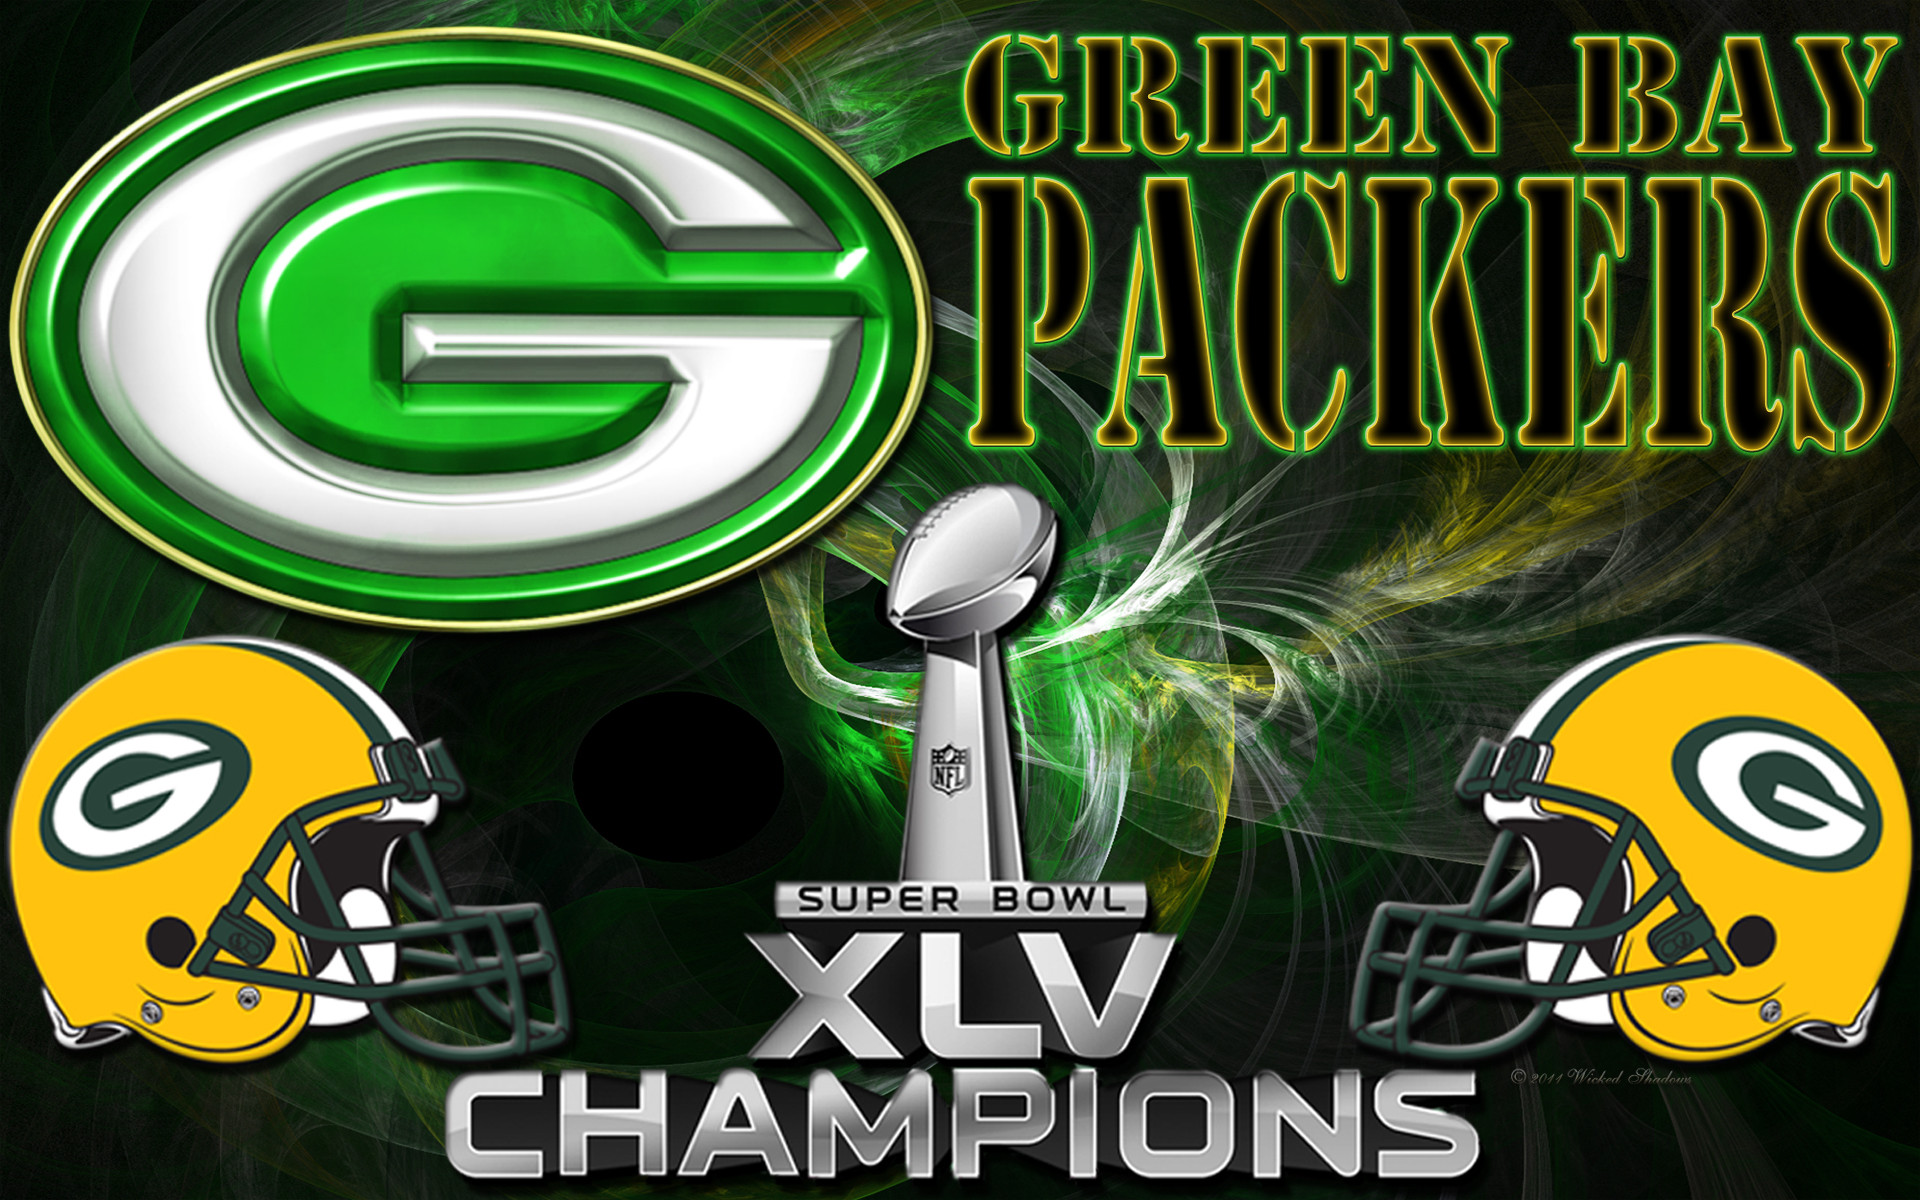 … x 1200. Green Bay Packers …